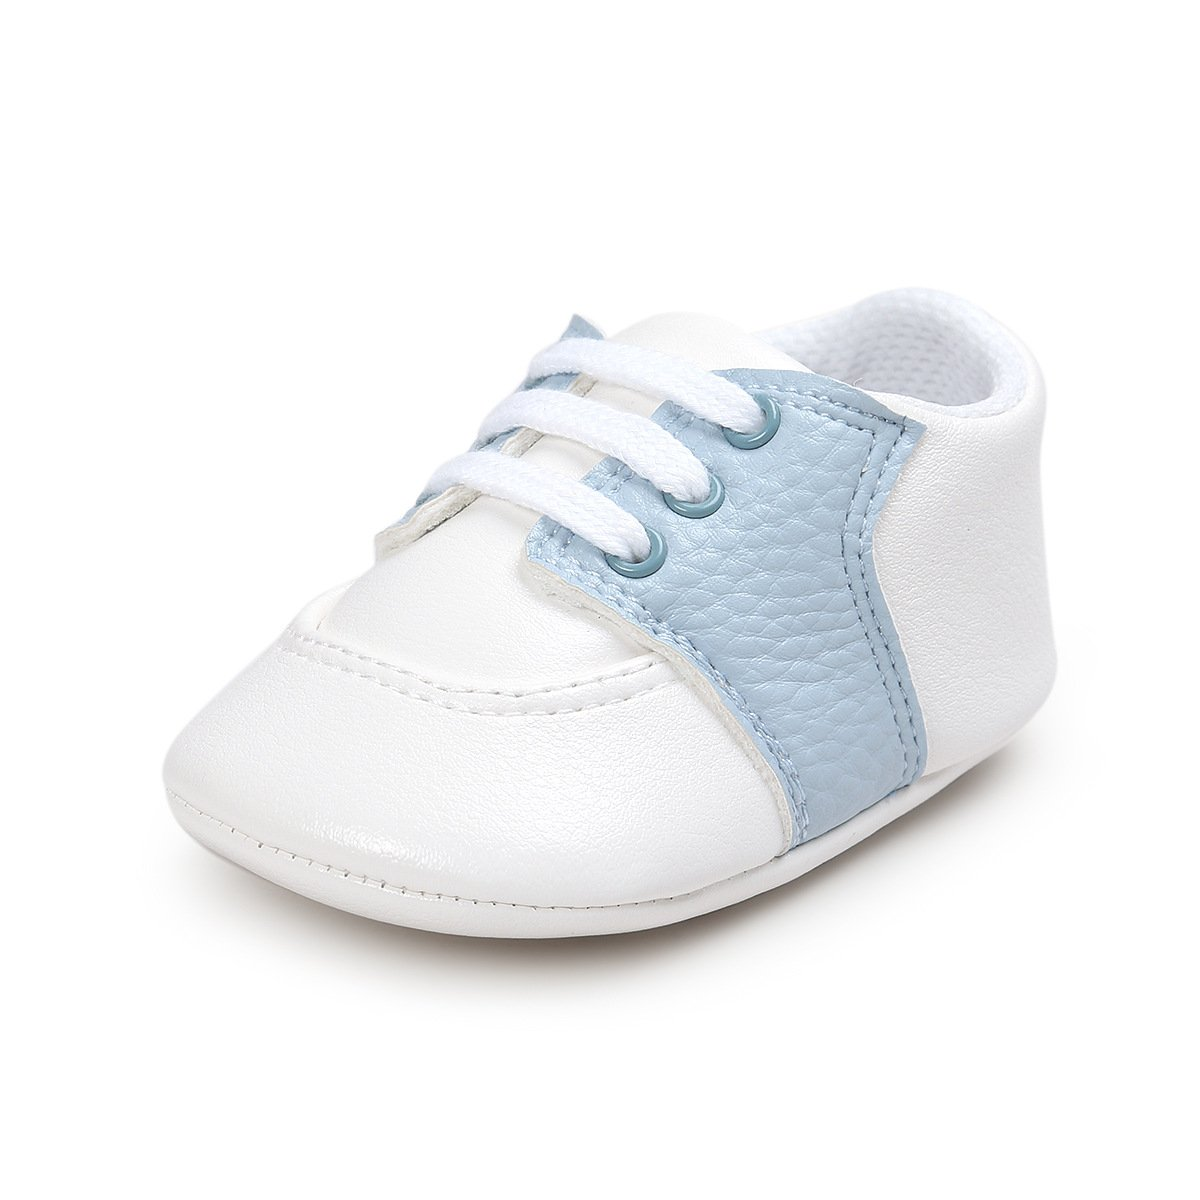 Fire Frog Baby Saddle Shoes for Boys Girl Infant Lace-up Sneakers Light Blue 0-6 Months